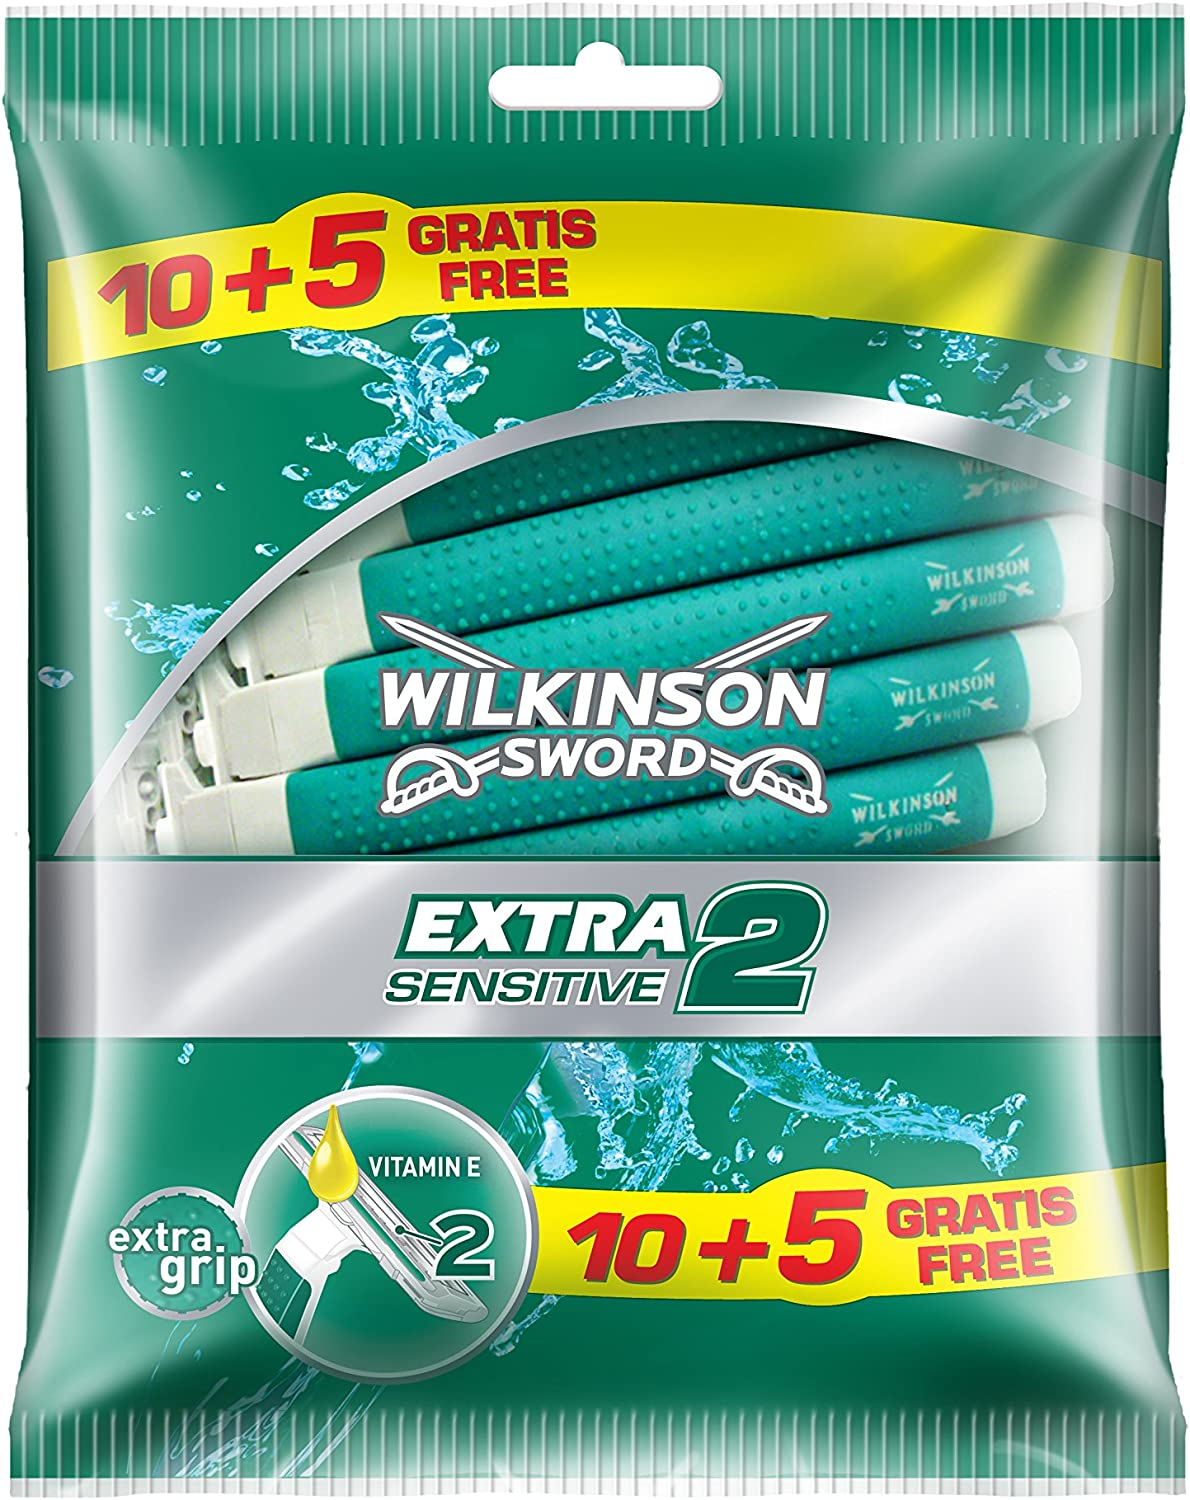 Wilkinson Sword Extra 2 Sensitive - máquinas desechables, 10 + 5 unidades